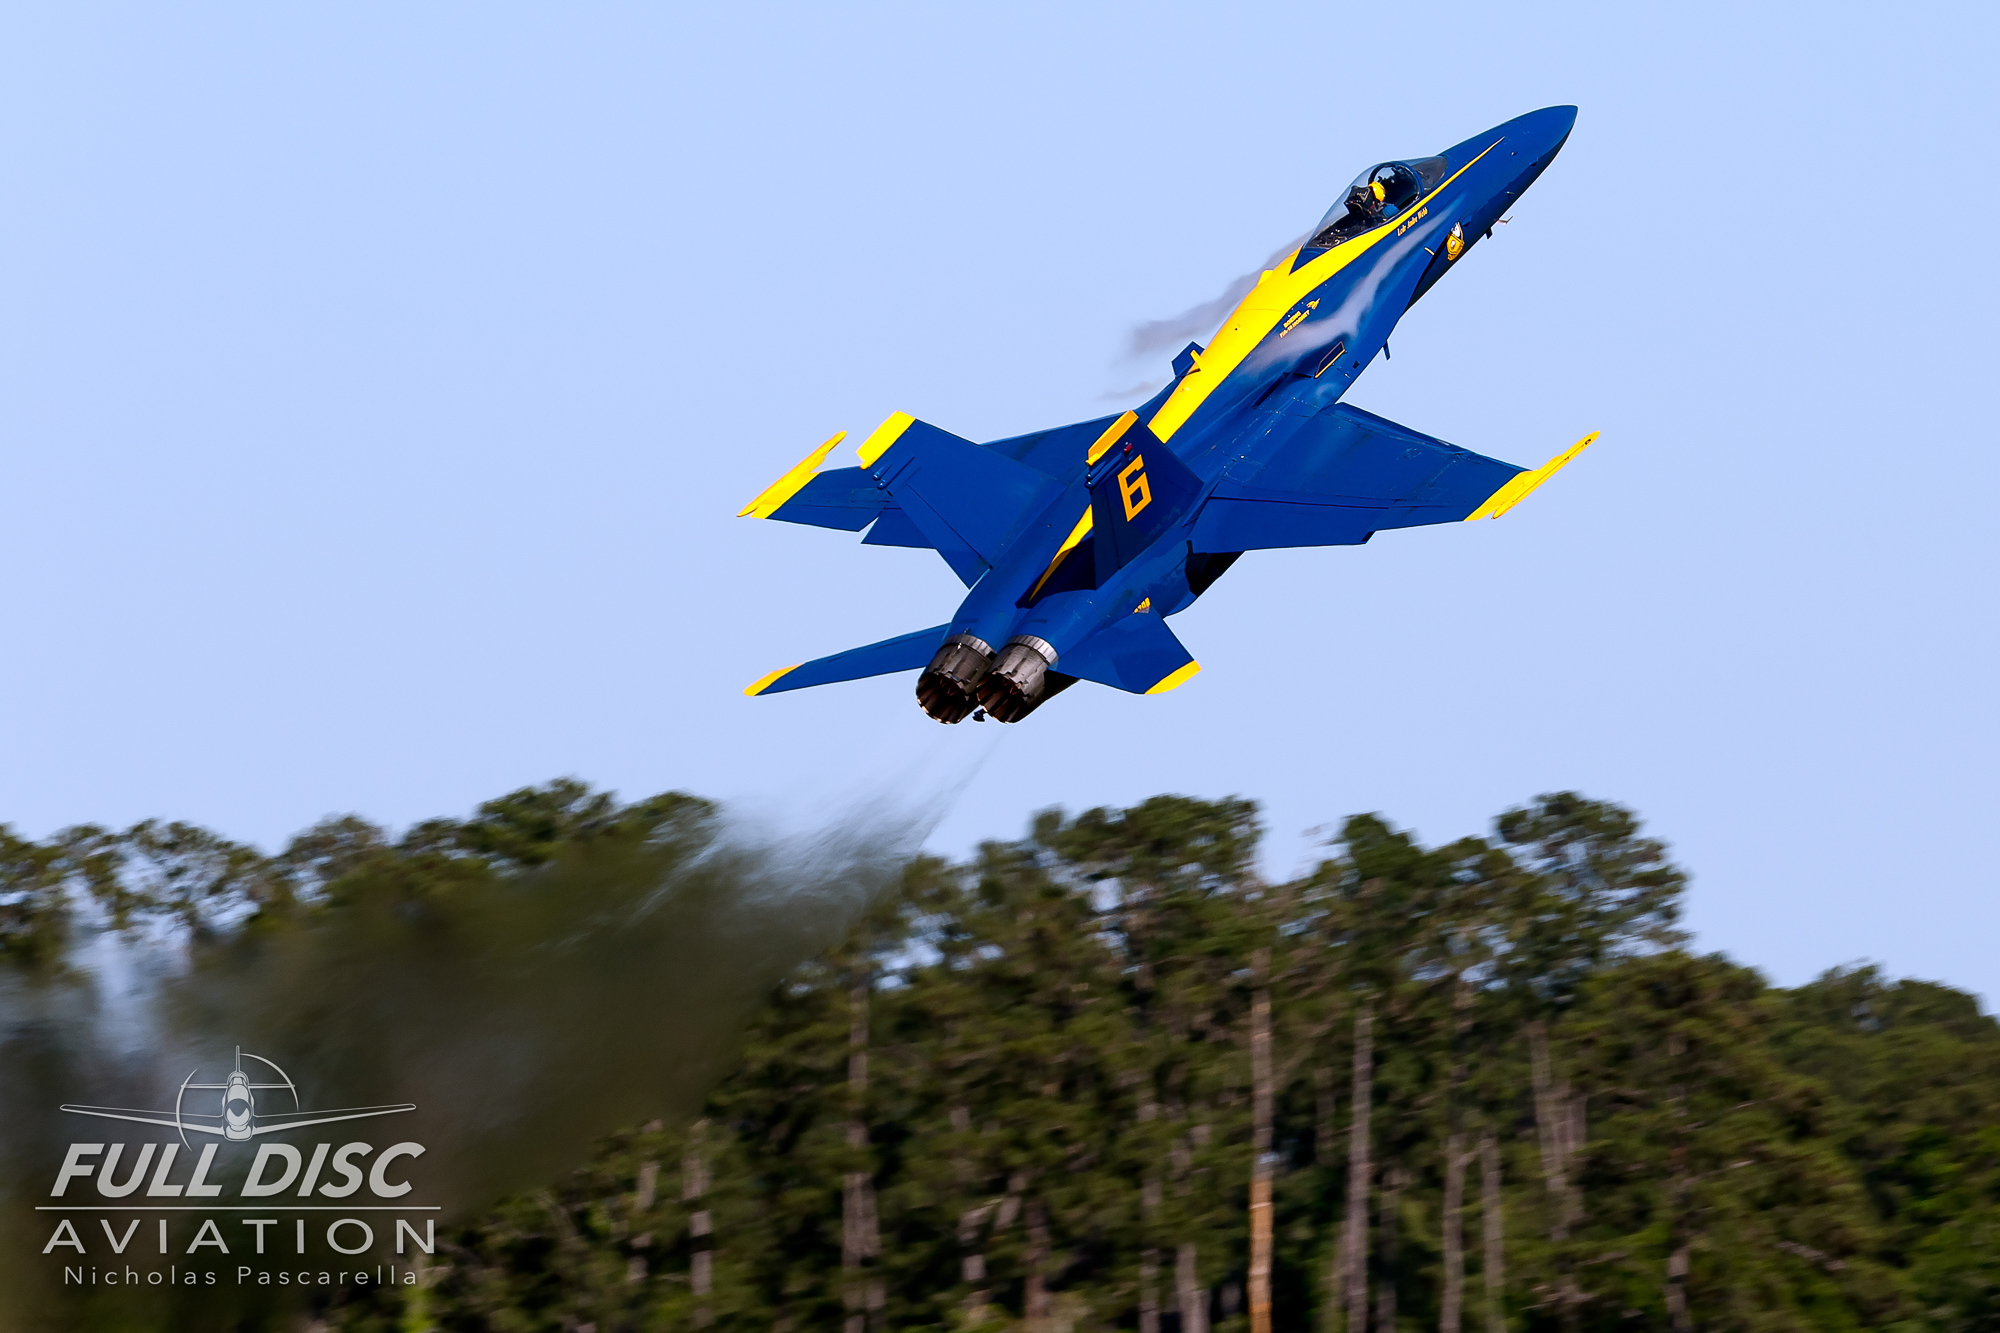 blueangels_takeoff_nicholaspascarella_fulldiscavation_aviation_airshow.jpg